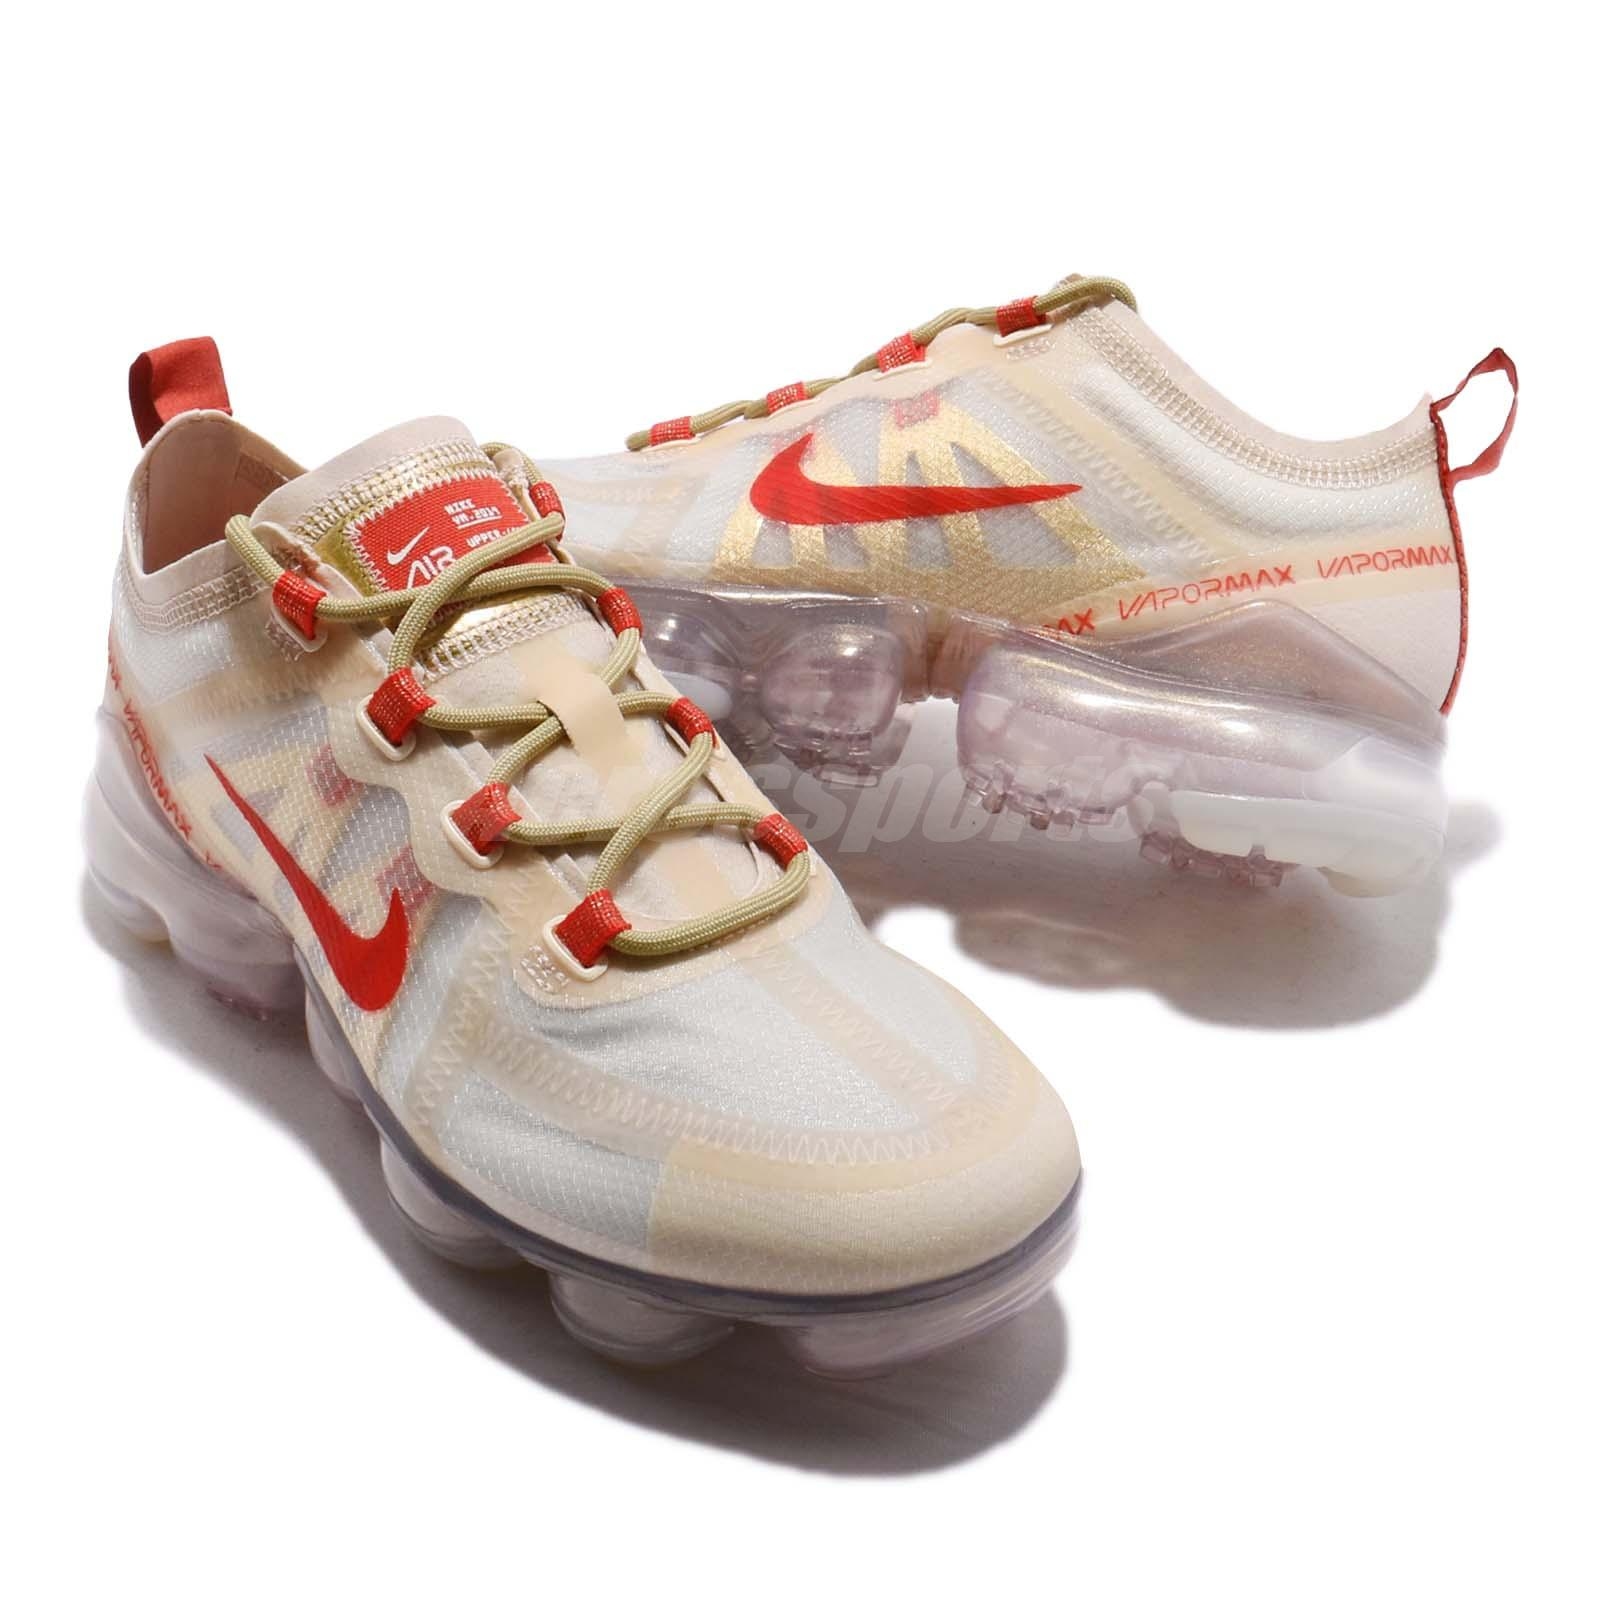 1907d5e65ca Nike Wmns Air Vapormax 2019 CNY Chinese New Year Women Shoes ...